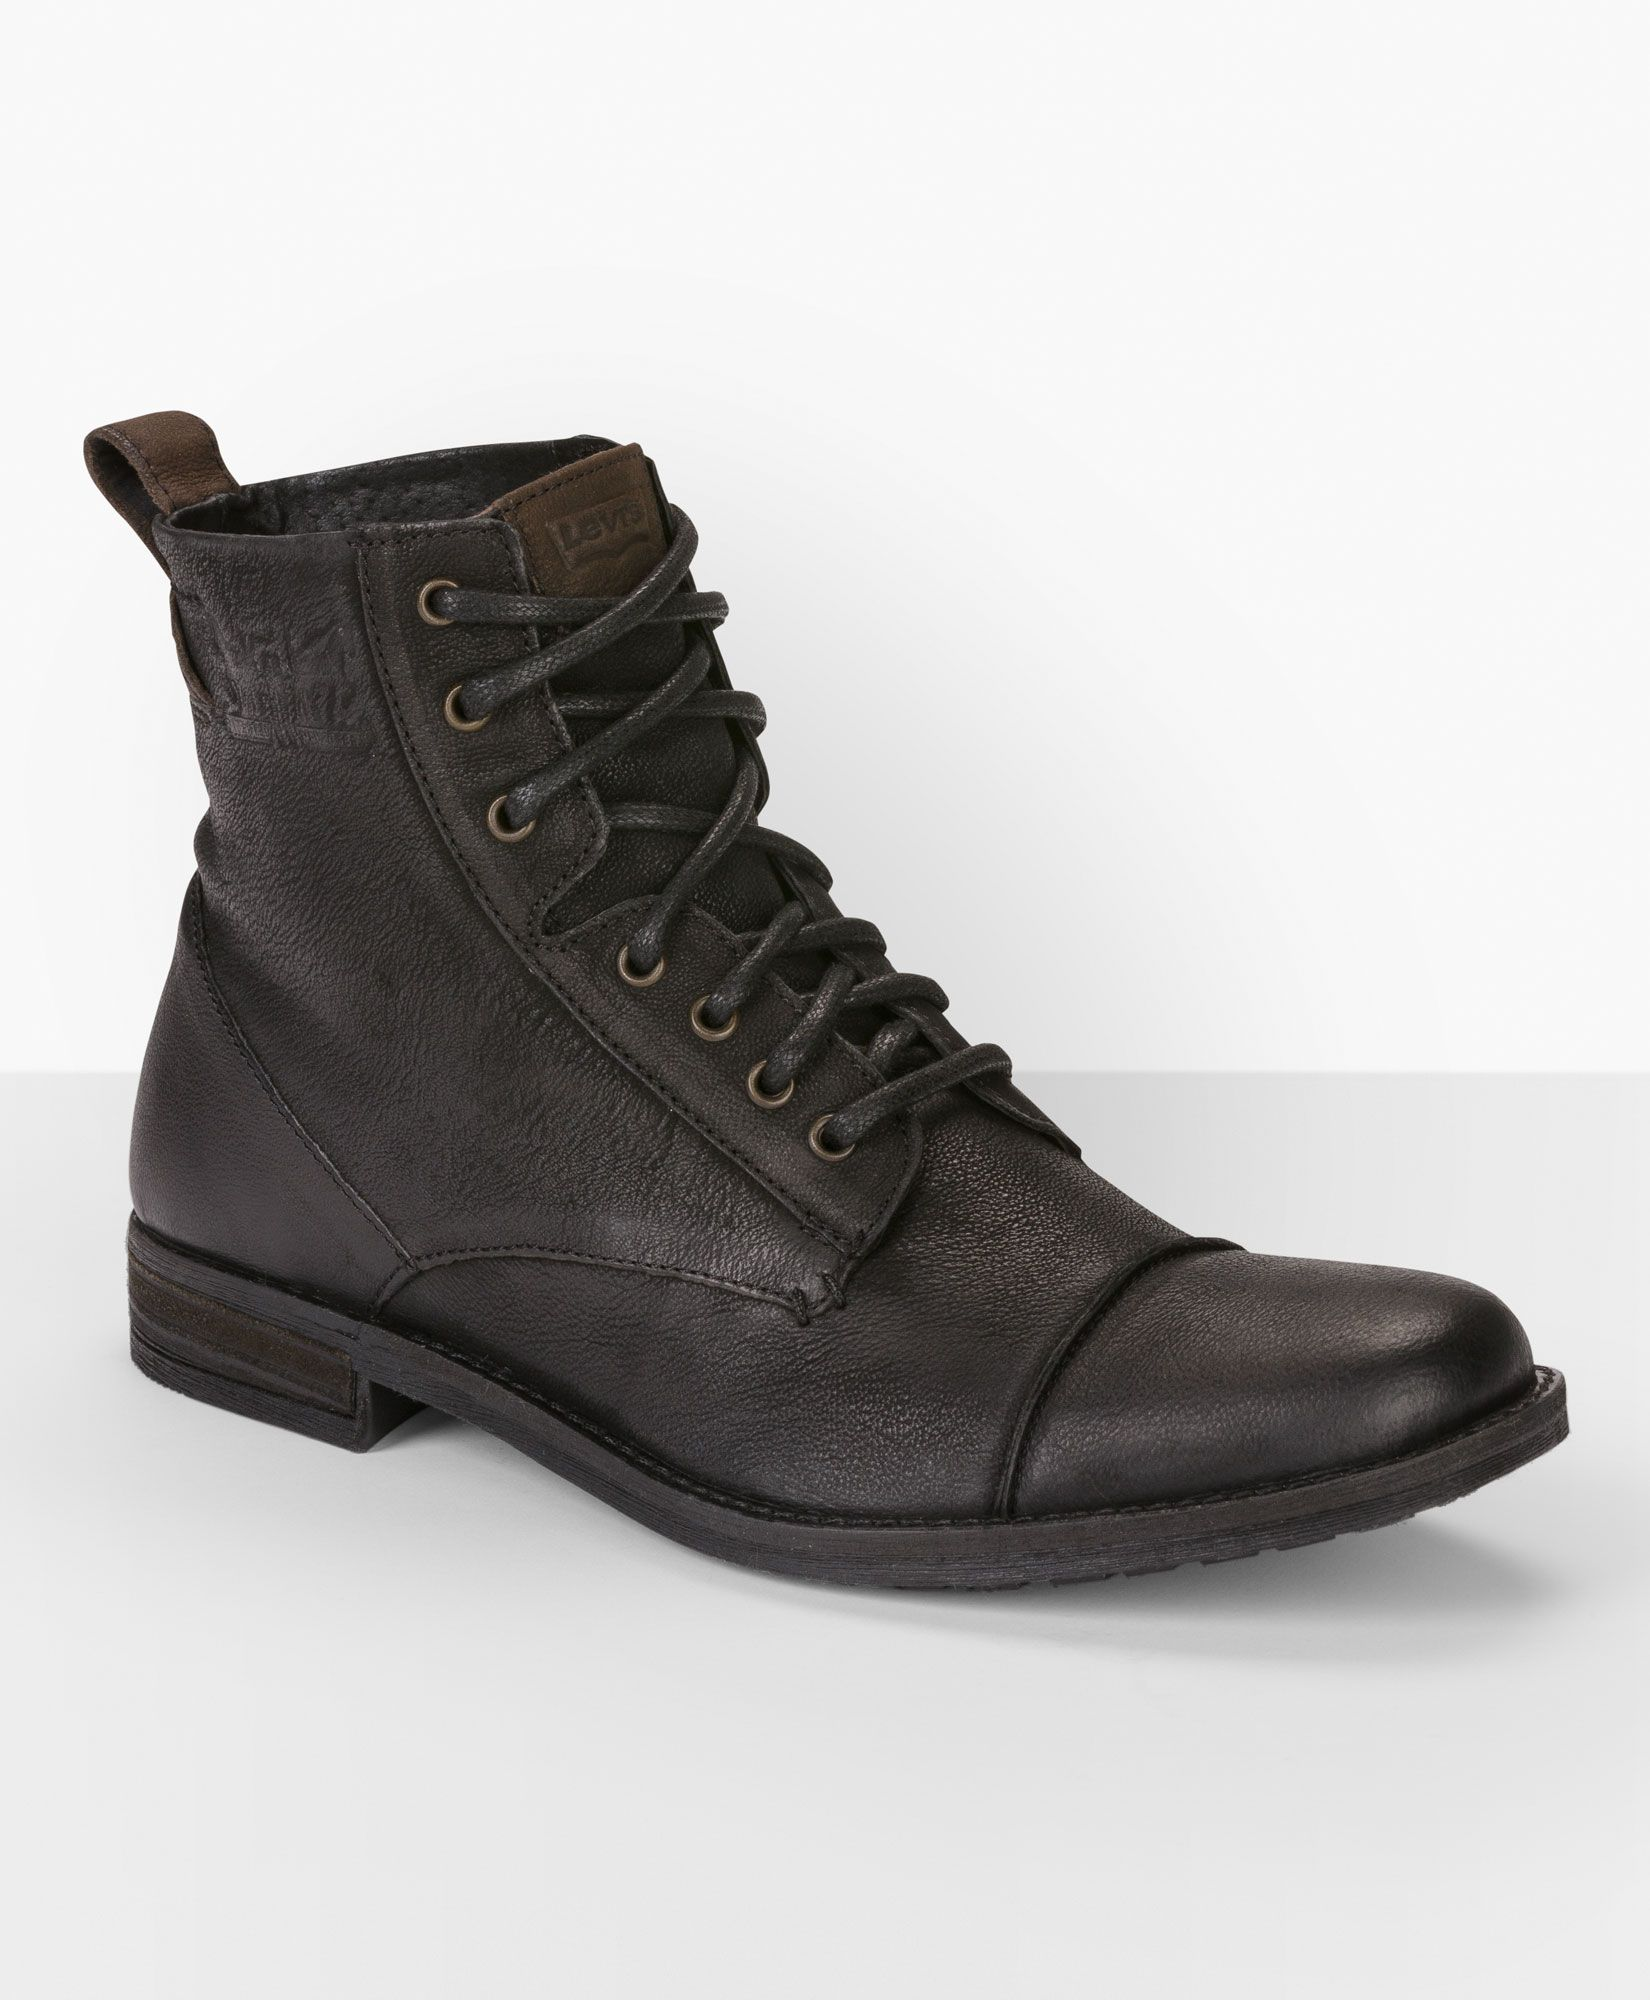 4ea7cc054ea Levi's Lace Up Utility Boots $128 size 12 | Sean in 2019 | Mens ...